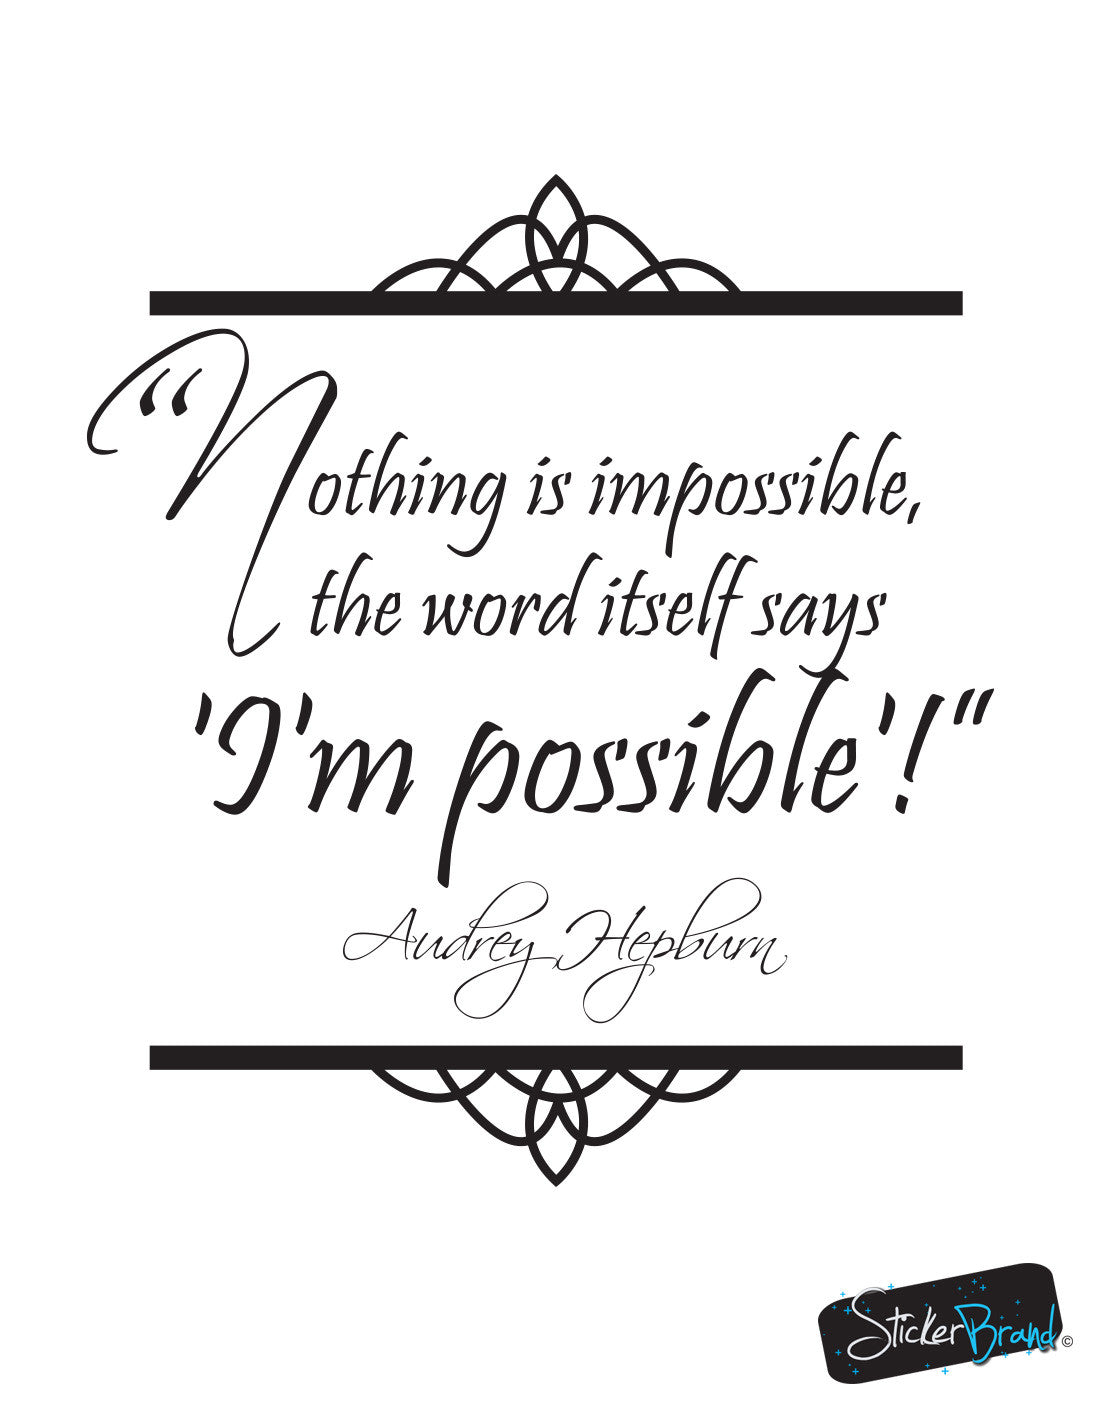 Vinyl Wall Decal Sticker Audrey Hepburn Quote Nothing is impossible, the word itself says 'I'm Possible'! #OS_DC521